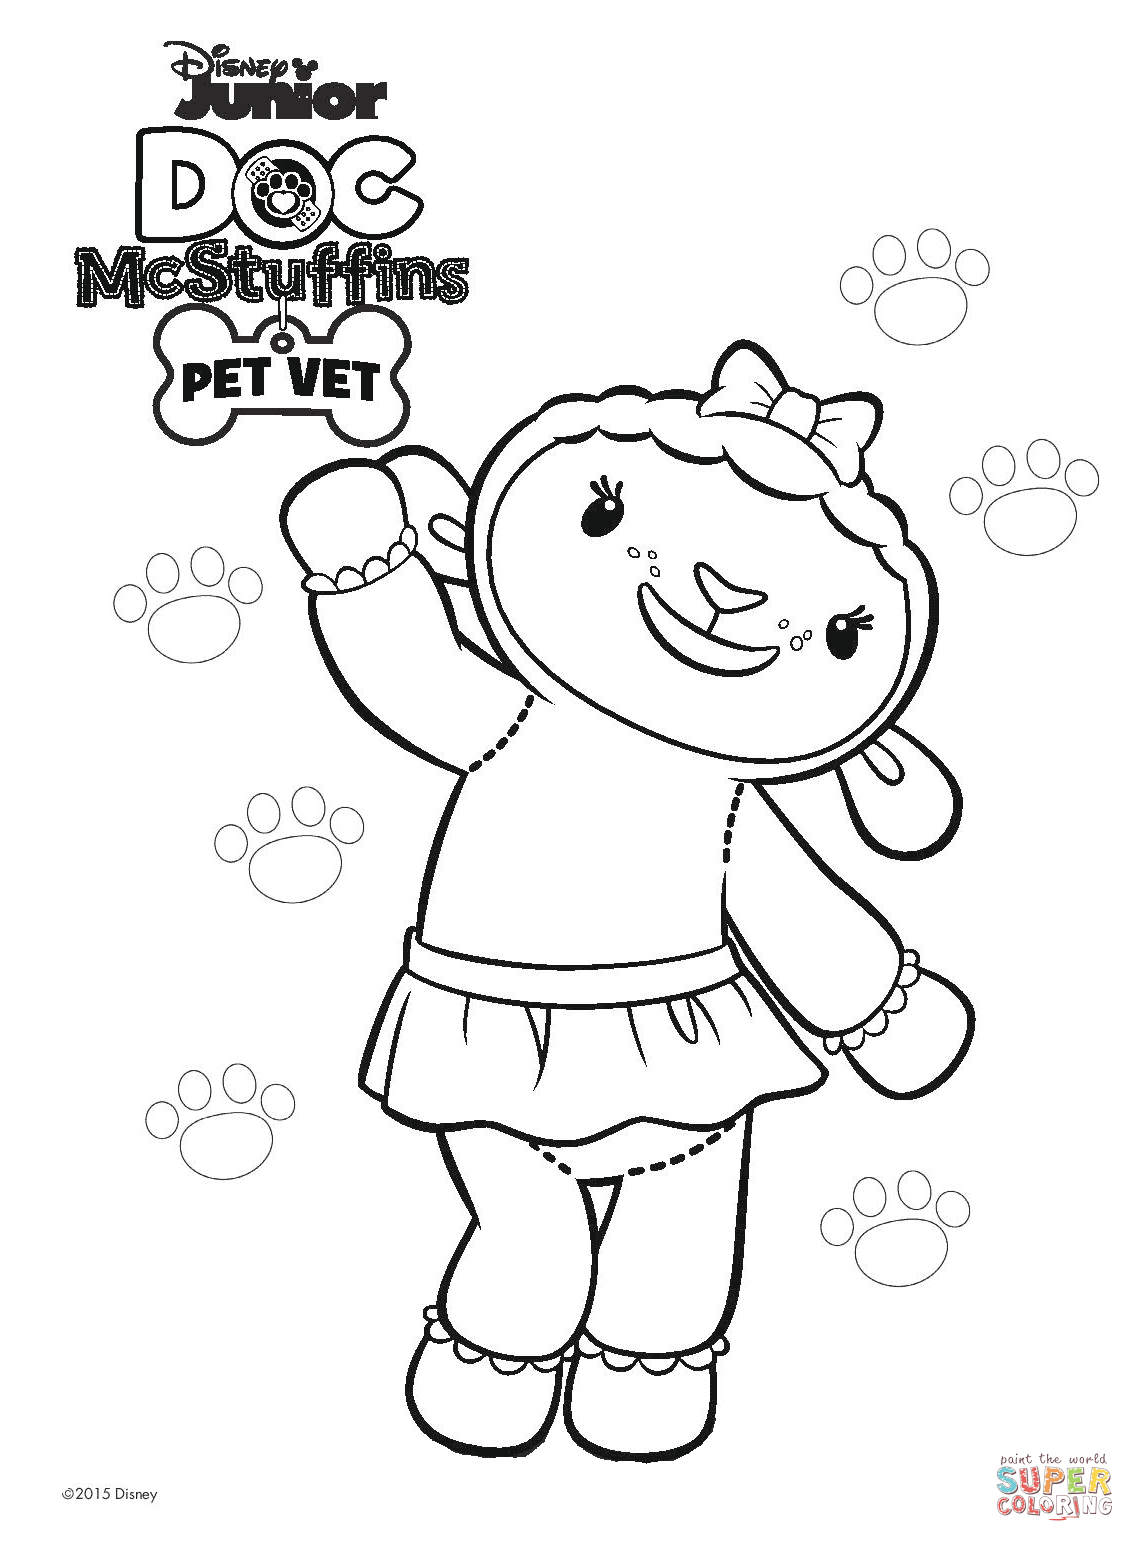 Doc Mcstuffins Printable Coloring Pages at GetDrawings.com | Free ...